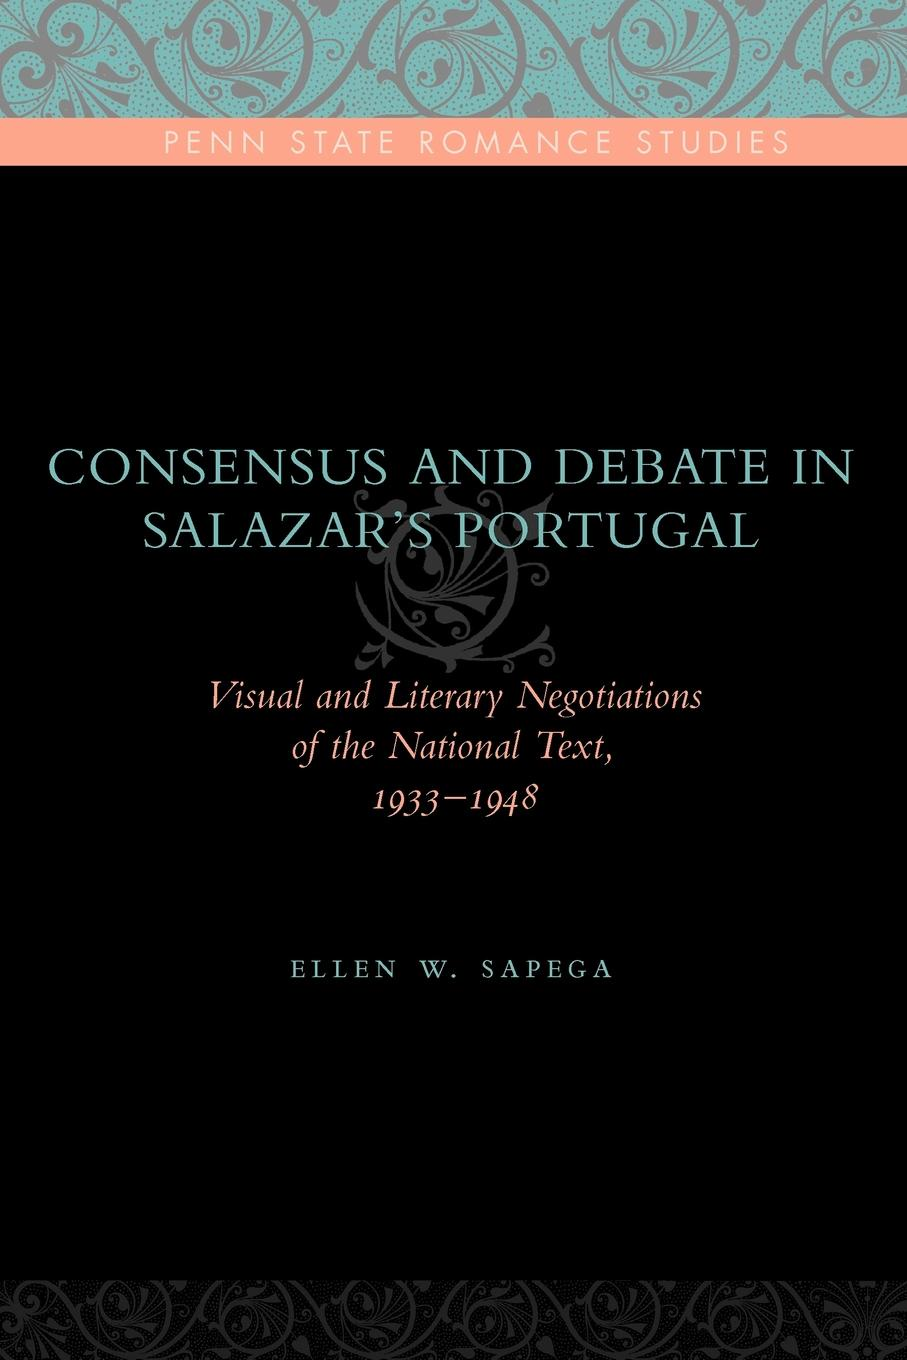 Ellen W. Sapega Consensus and Debate in Salazar.s Portugal. Visual and Literary Negotiations of the National Text, 1933-1948 malcolm kemp extreme events robust portfolio construction in the presence of fat tails isbn 9780470976791